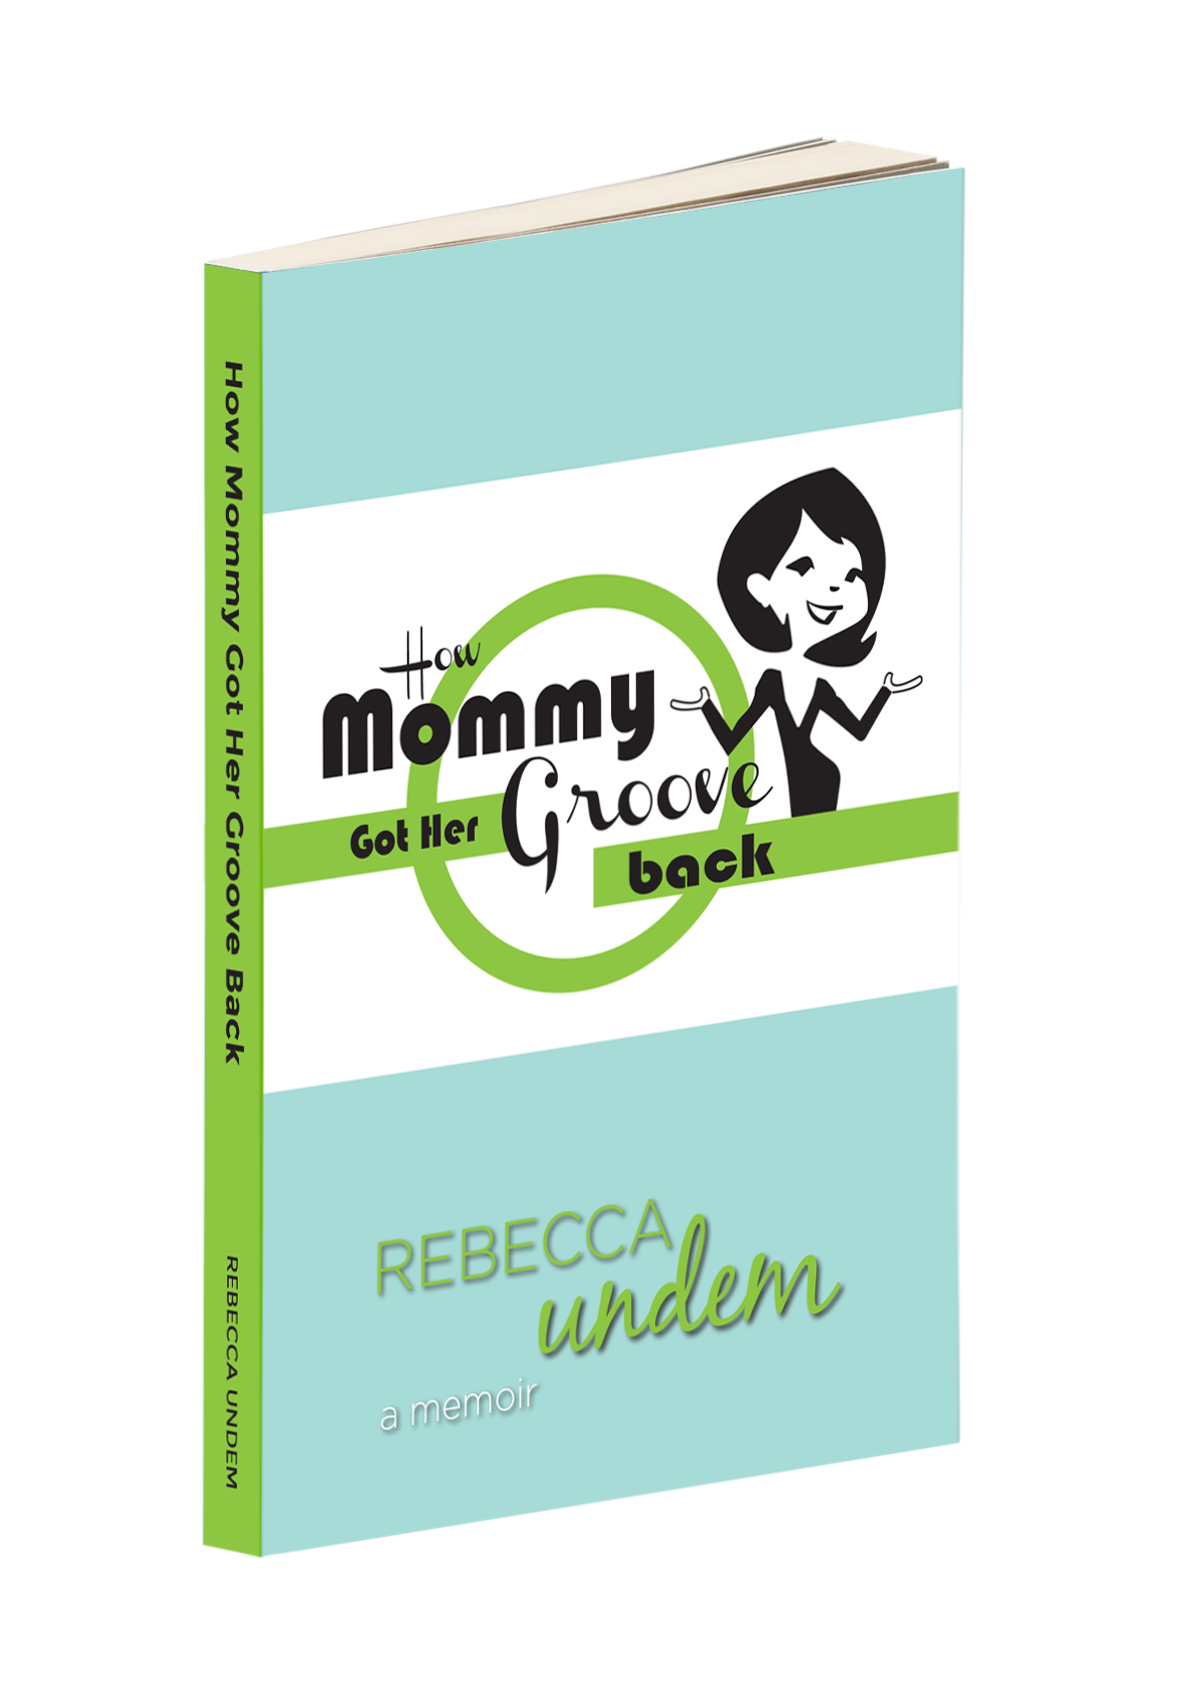 How Mommy Got Her Groove Back show art